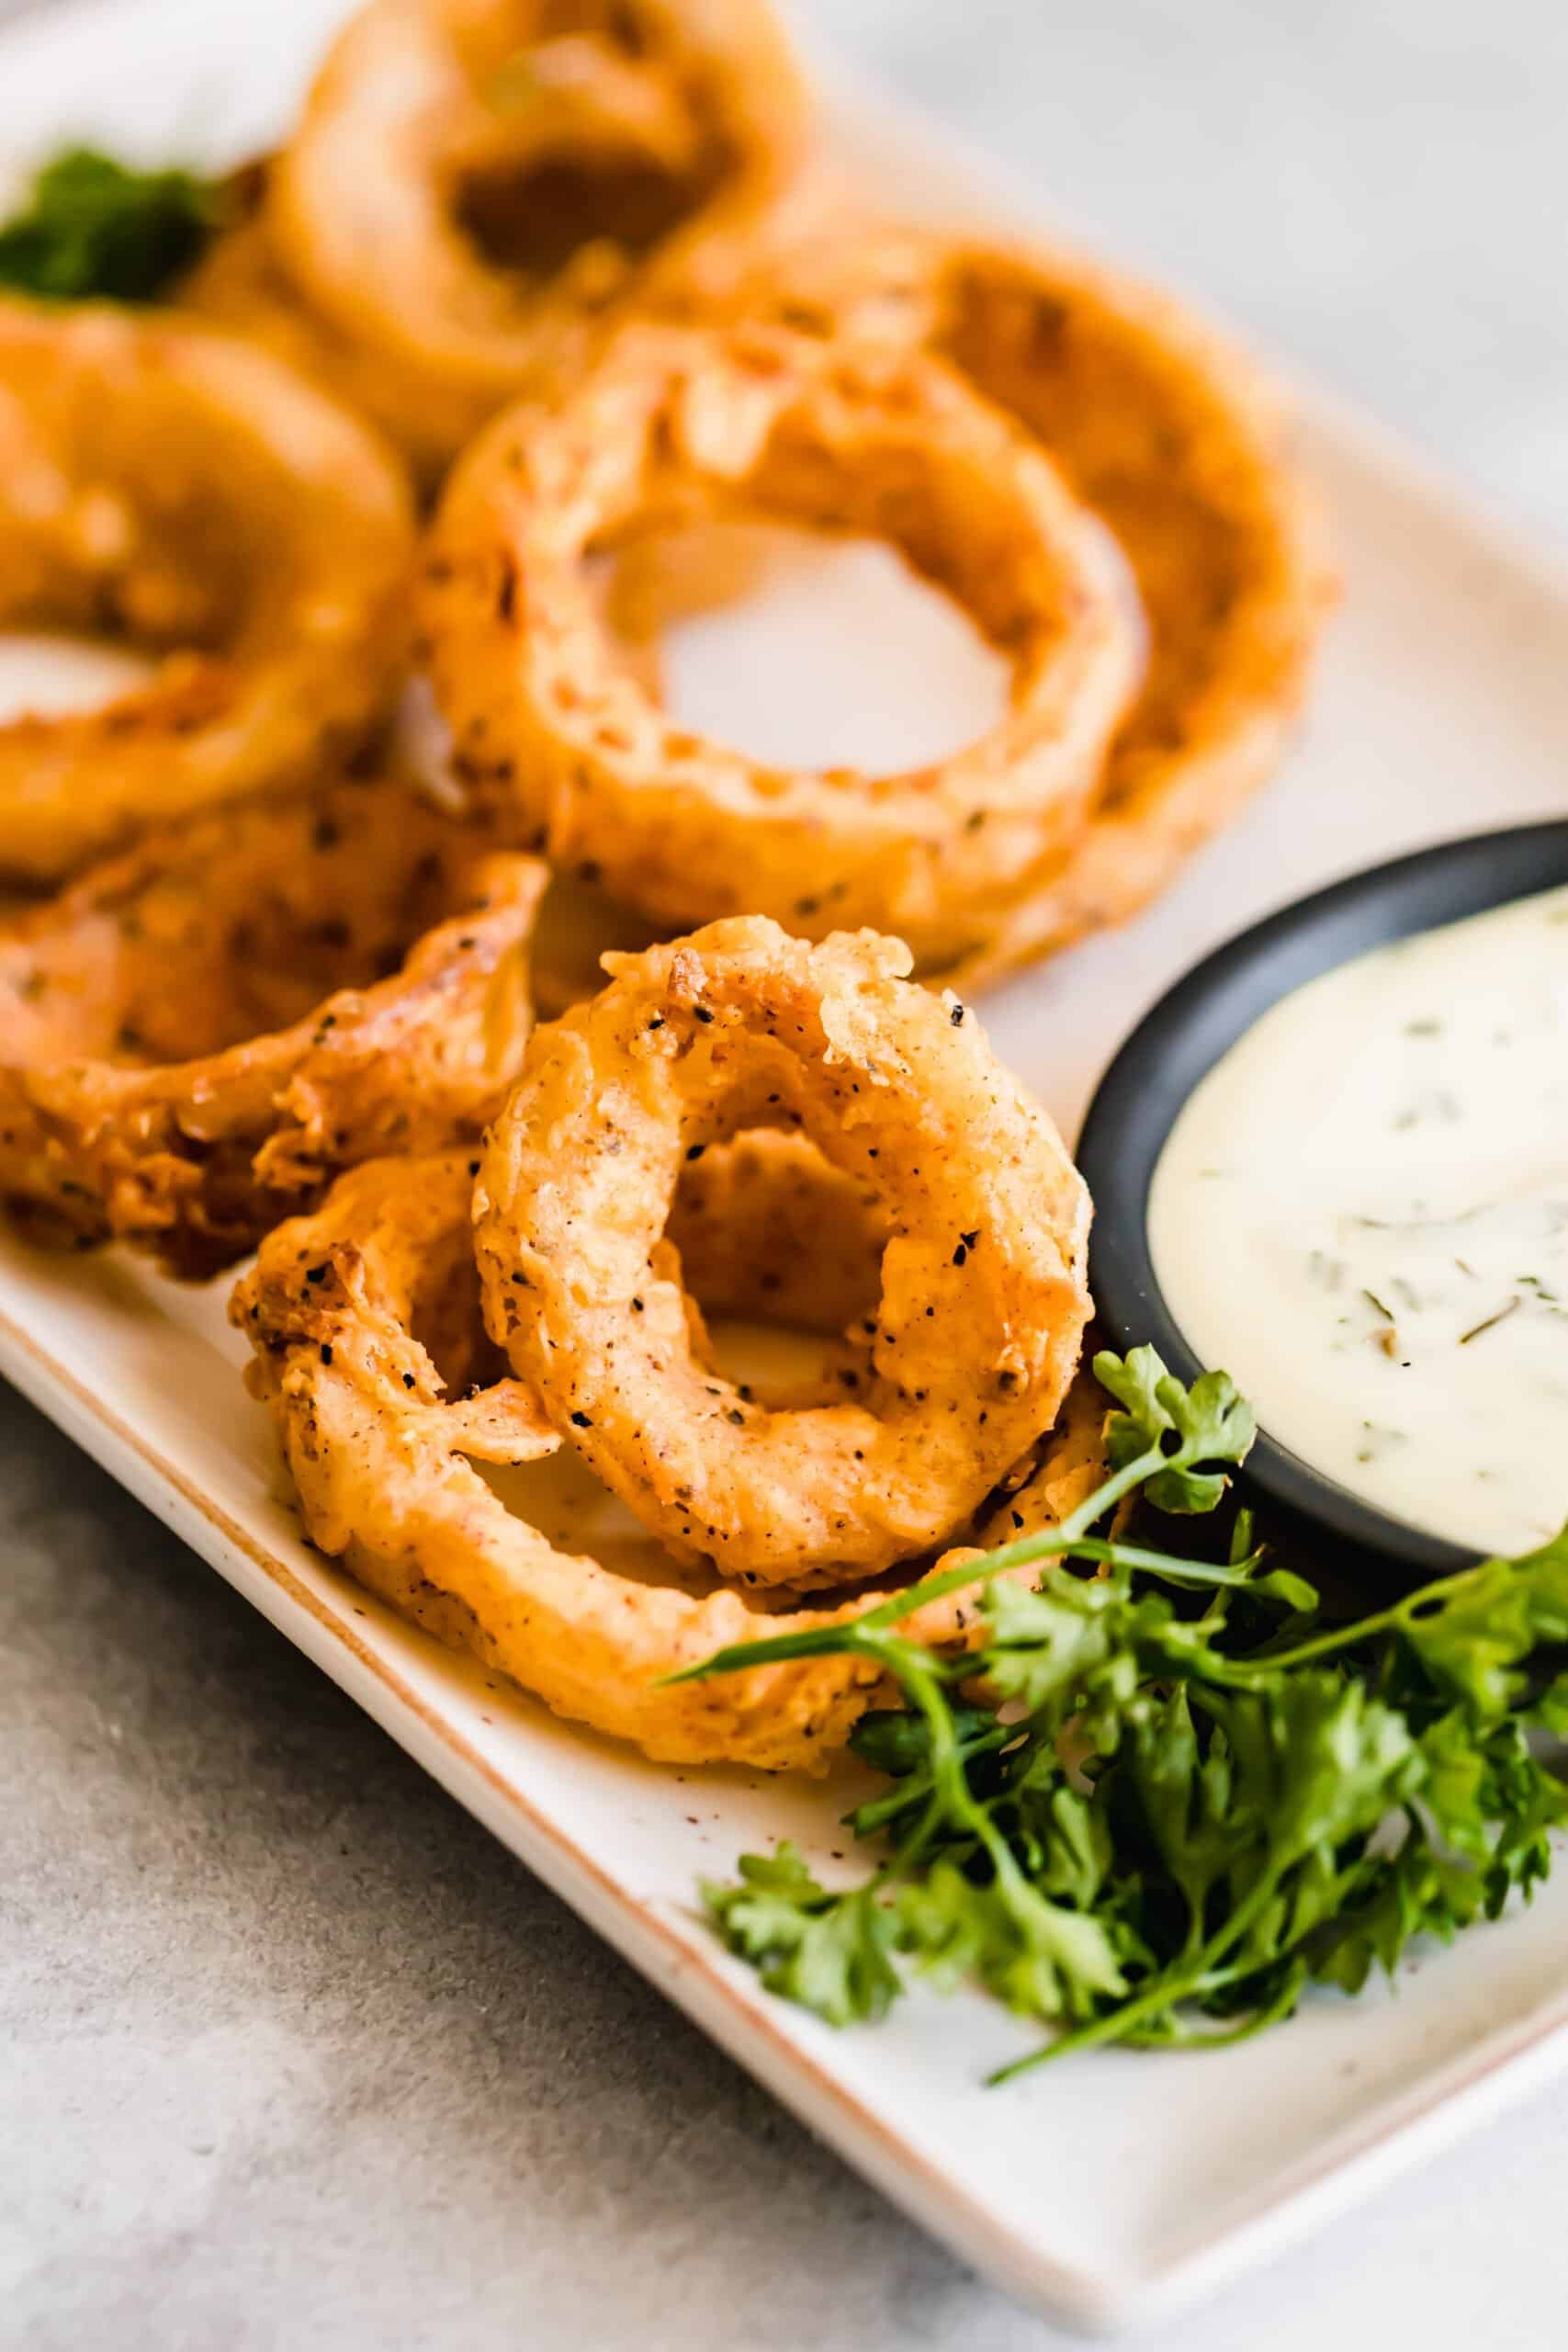 Plate of onion rings with dip.